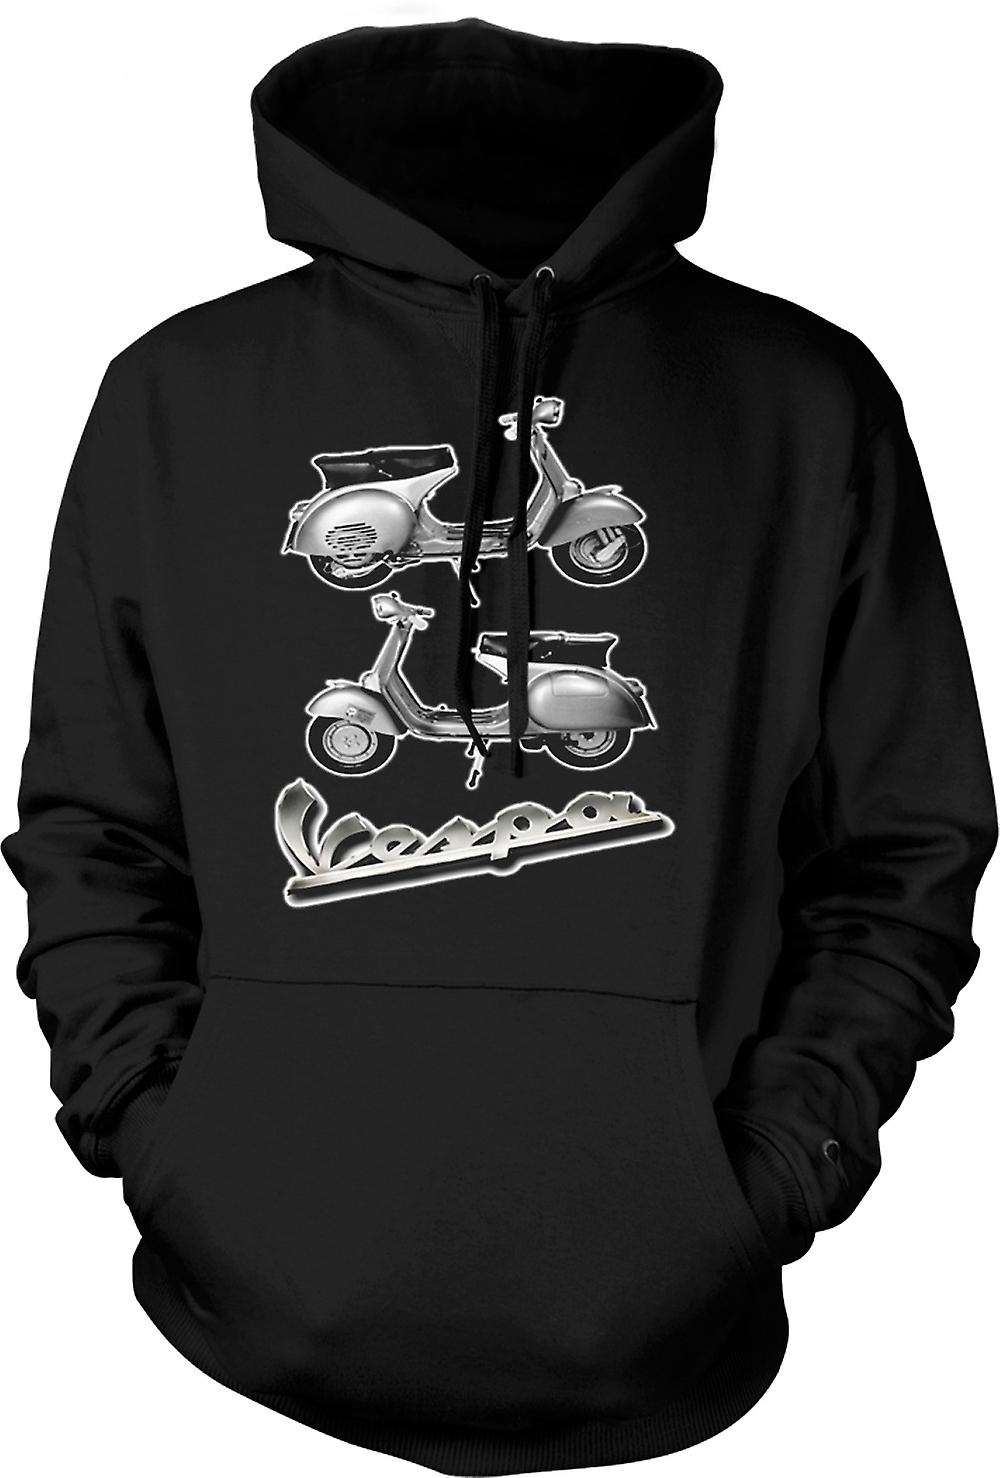 Enfant Sweat Capuche - Vespa 150GS Scooter - Mod